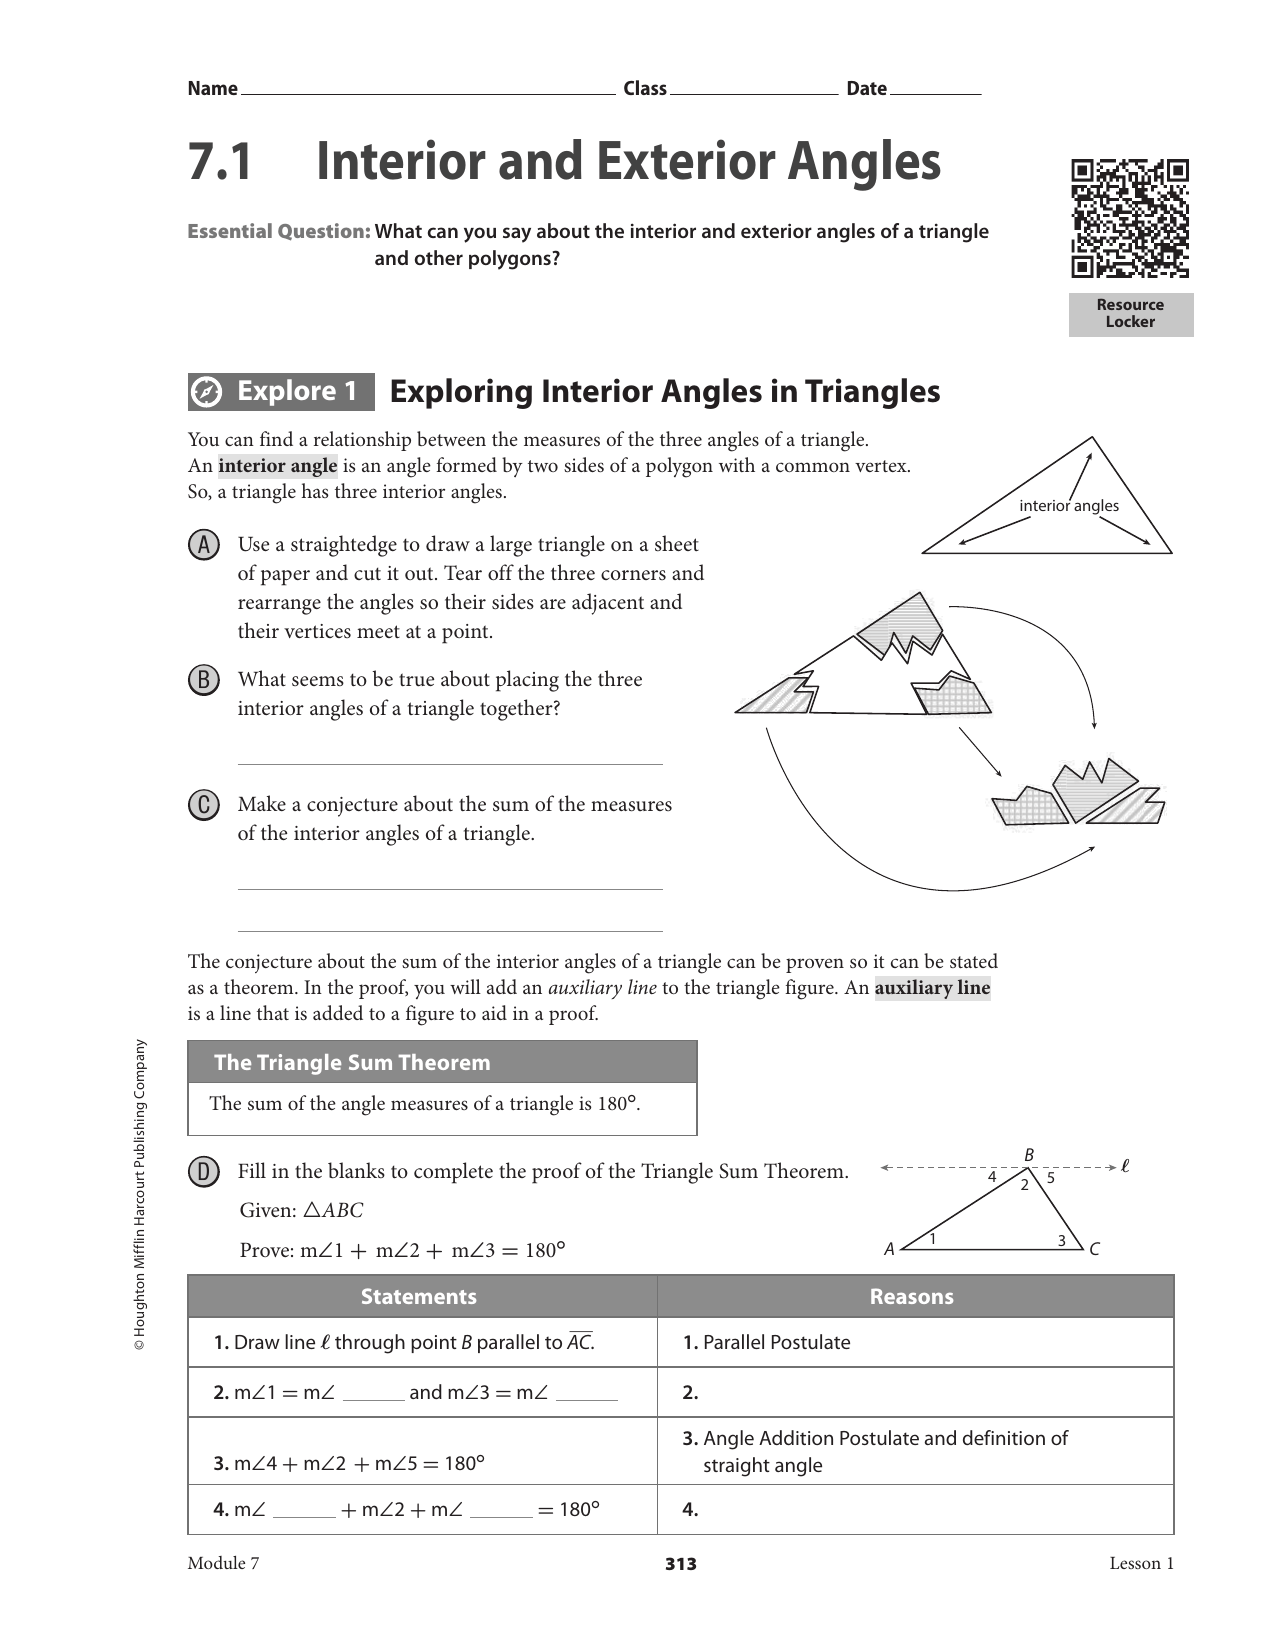 Interior Exterior Angles Worksheet Trendy Interior And Exterior Angles Decor Classifying